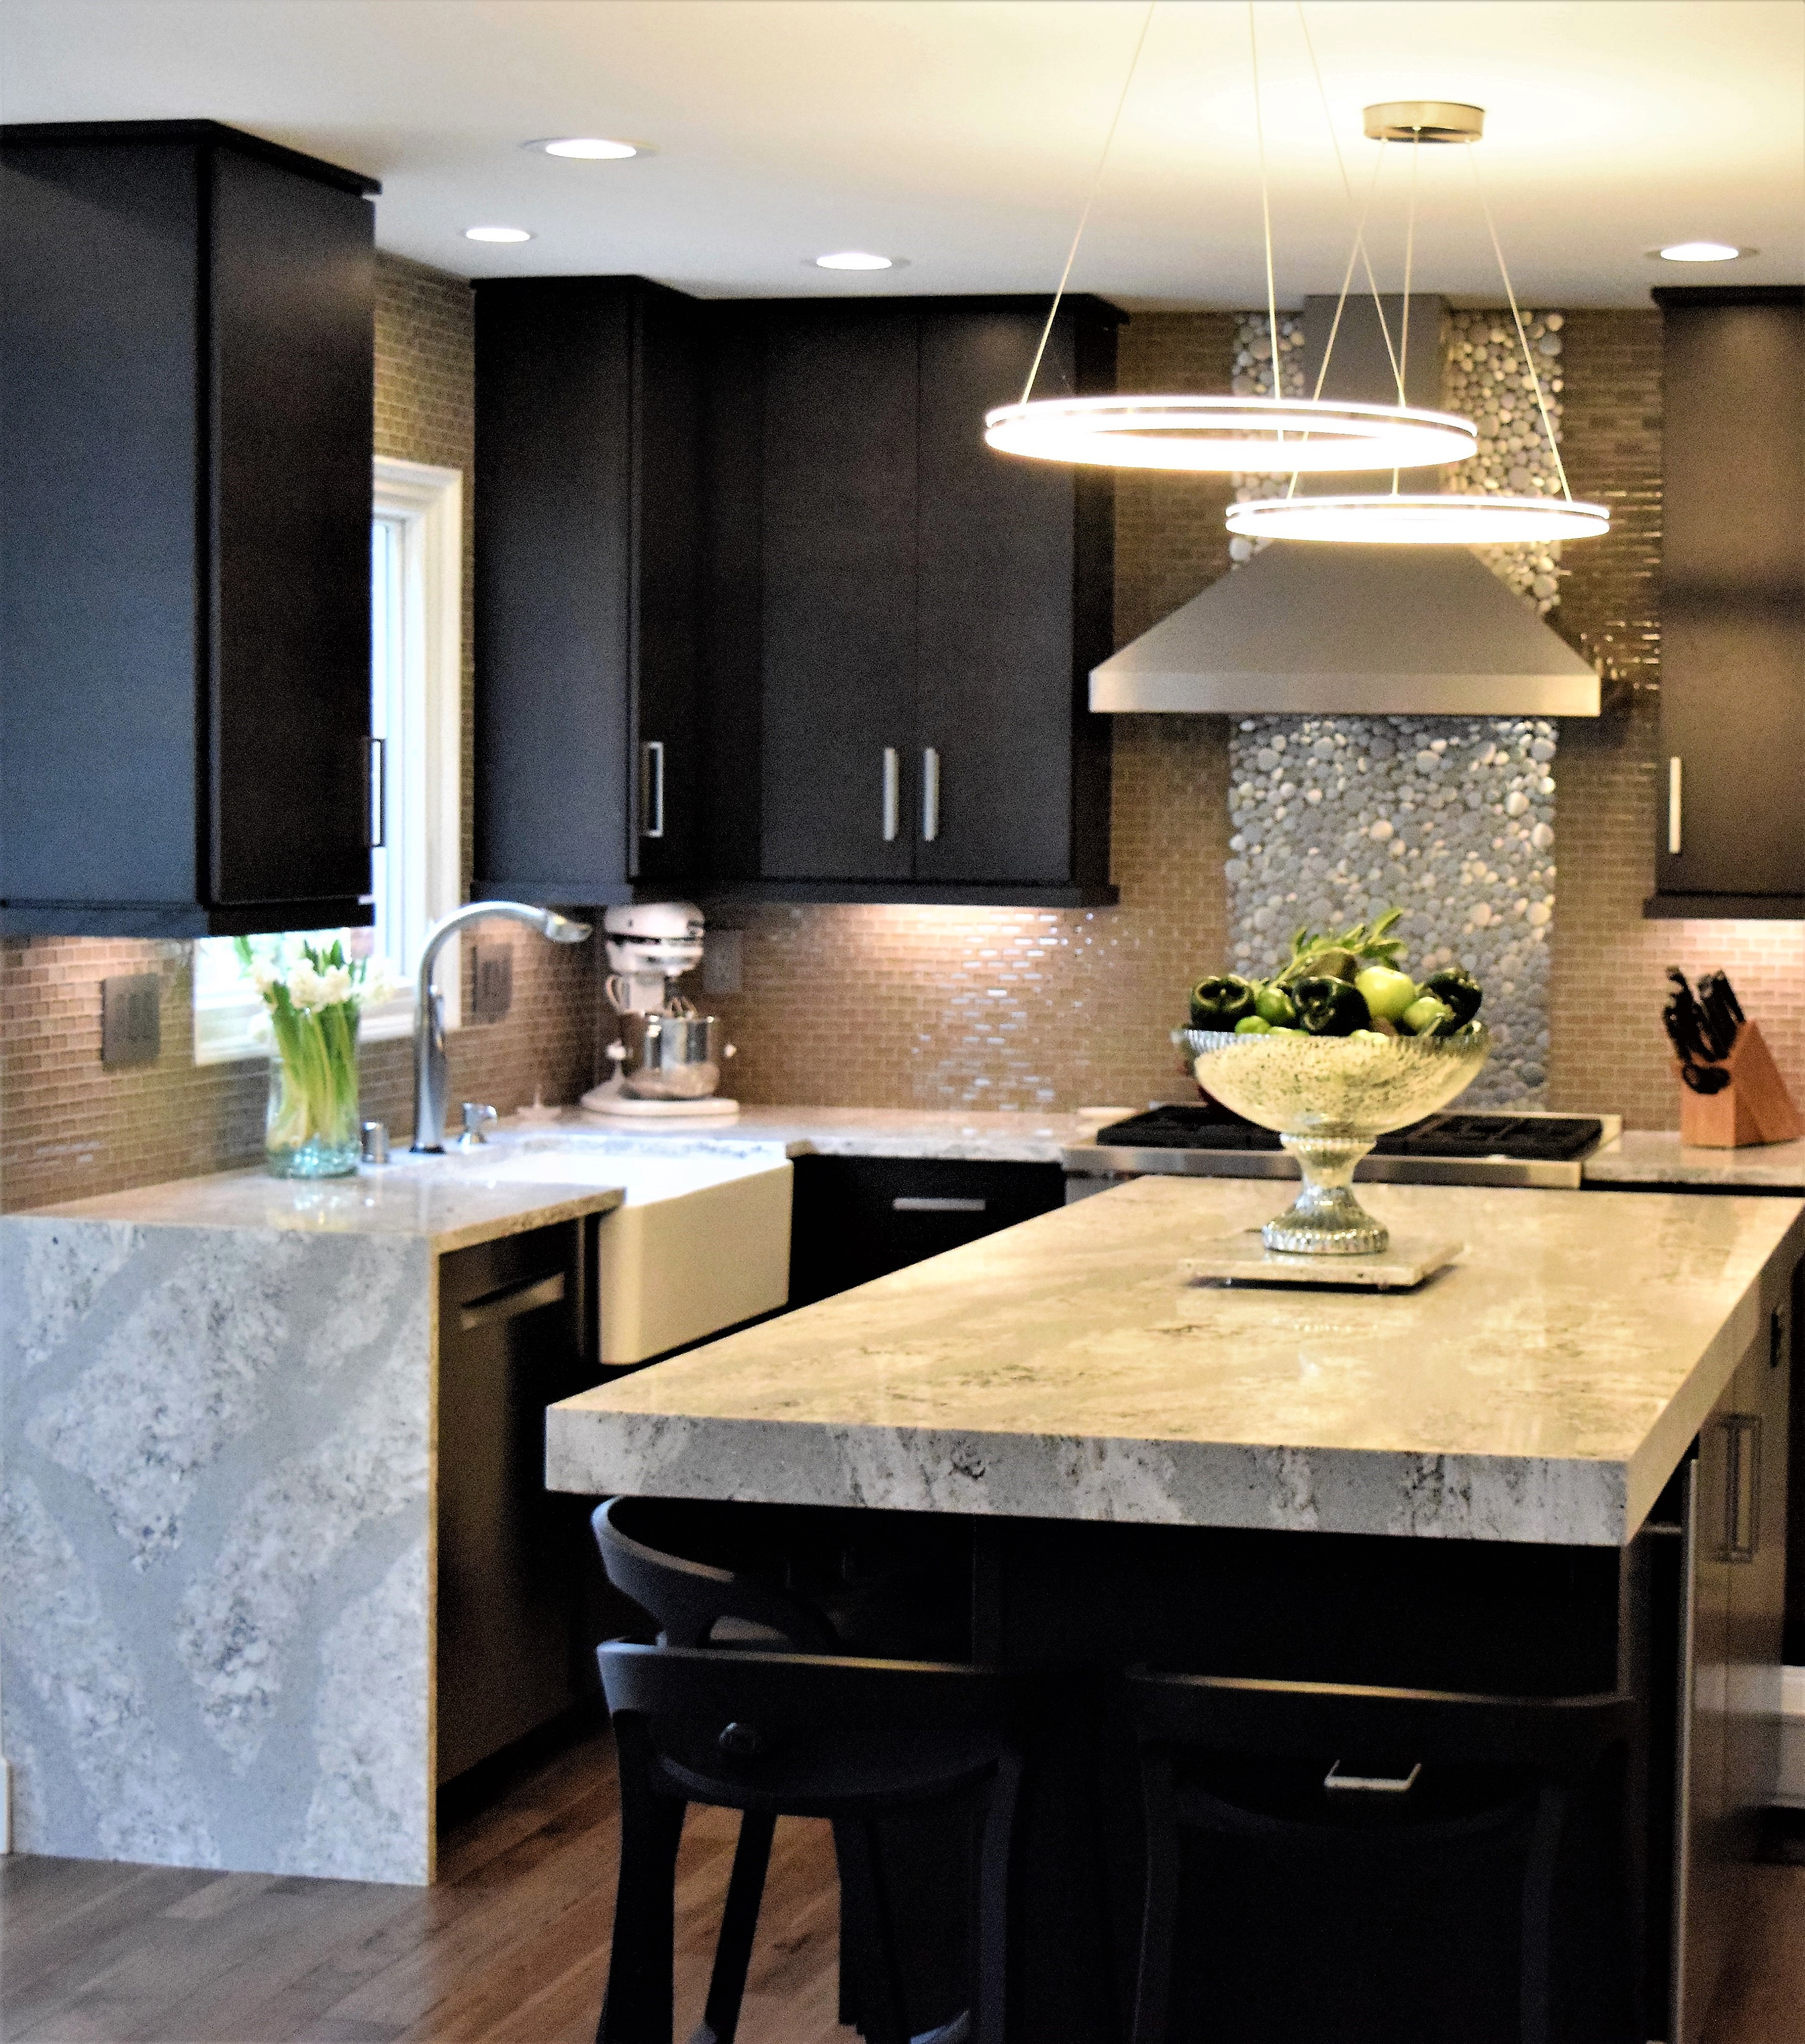 kitchens - llds home store & design studio